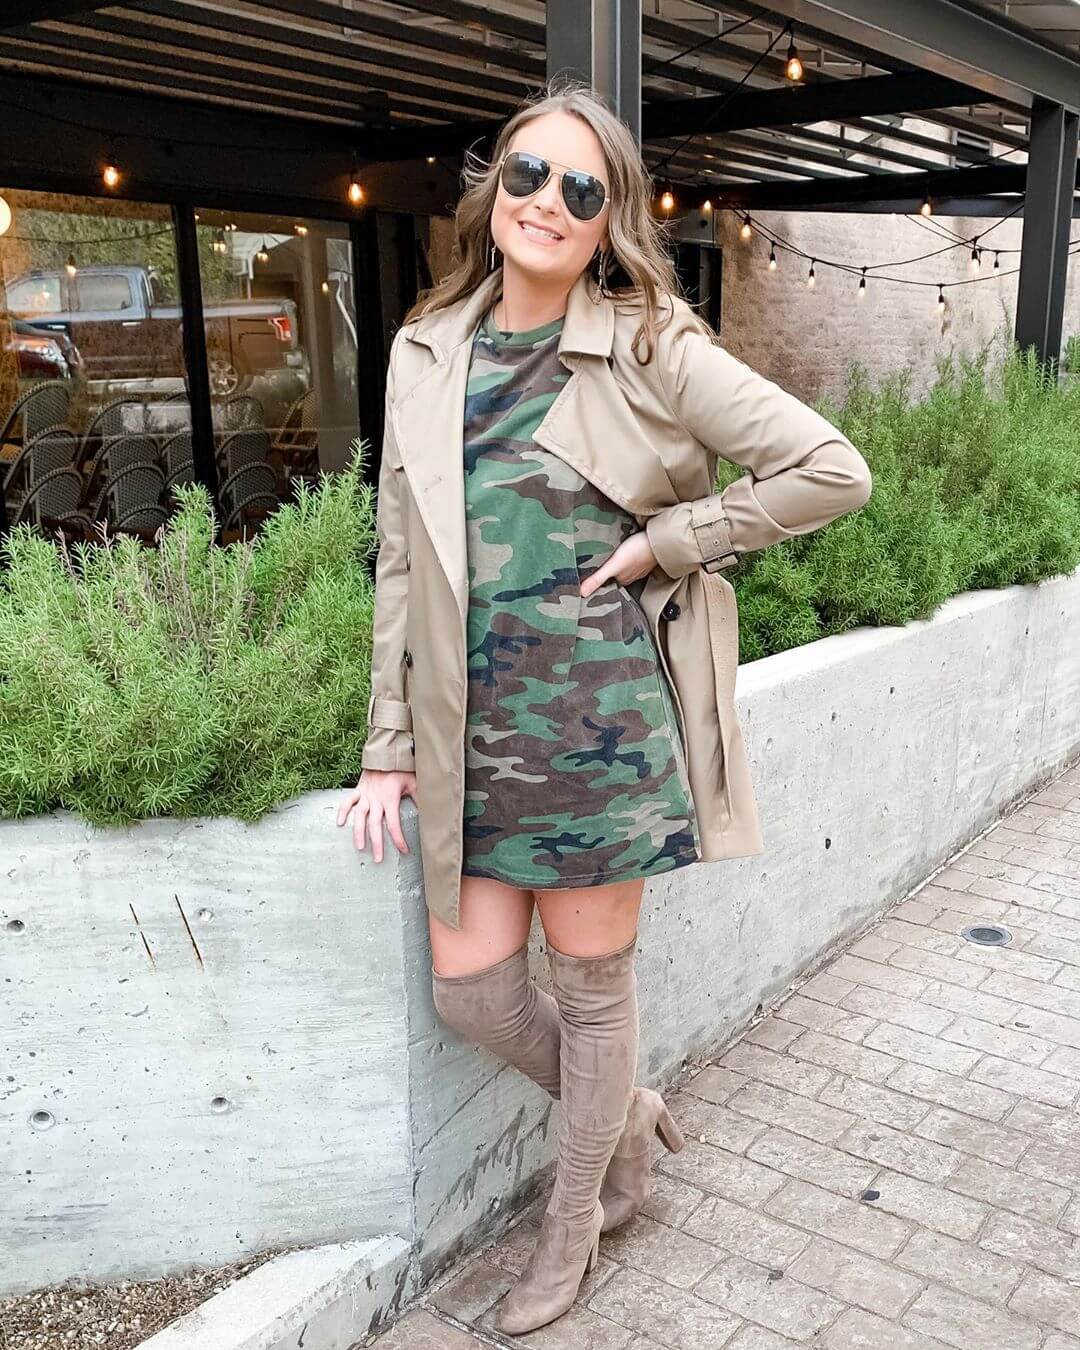 Rocking the camouflage with a Trench coat